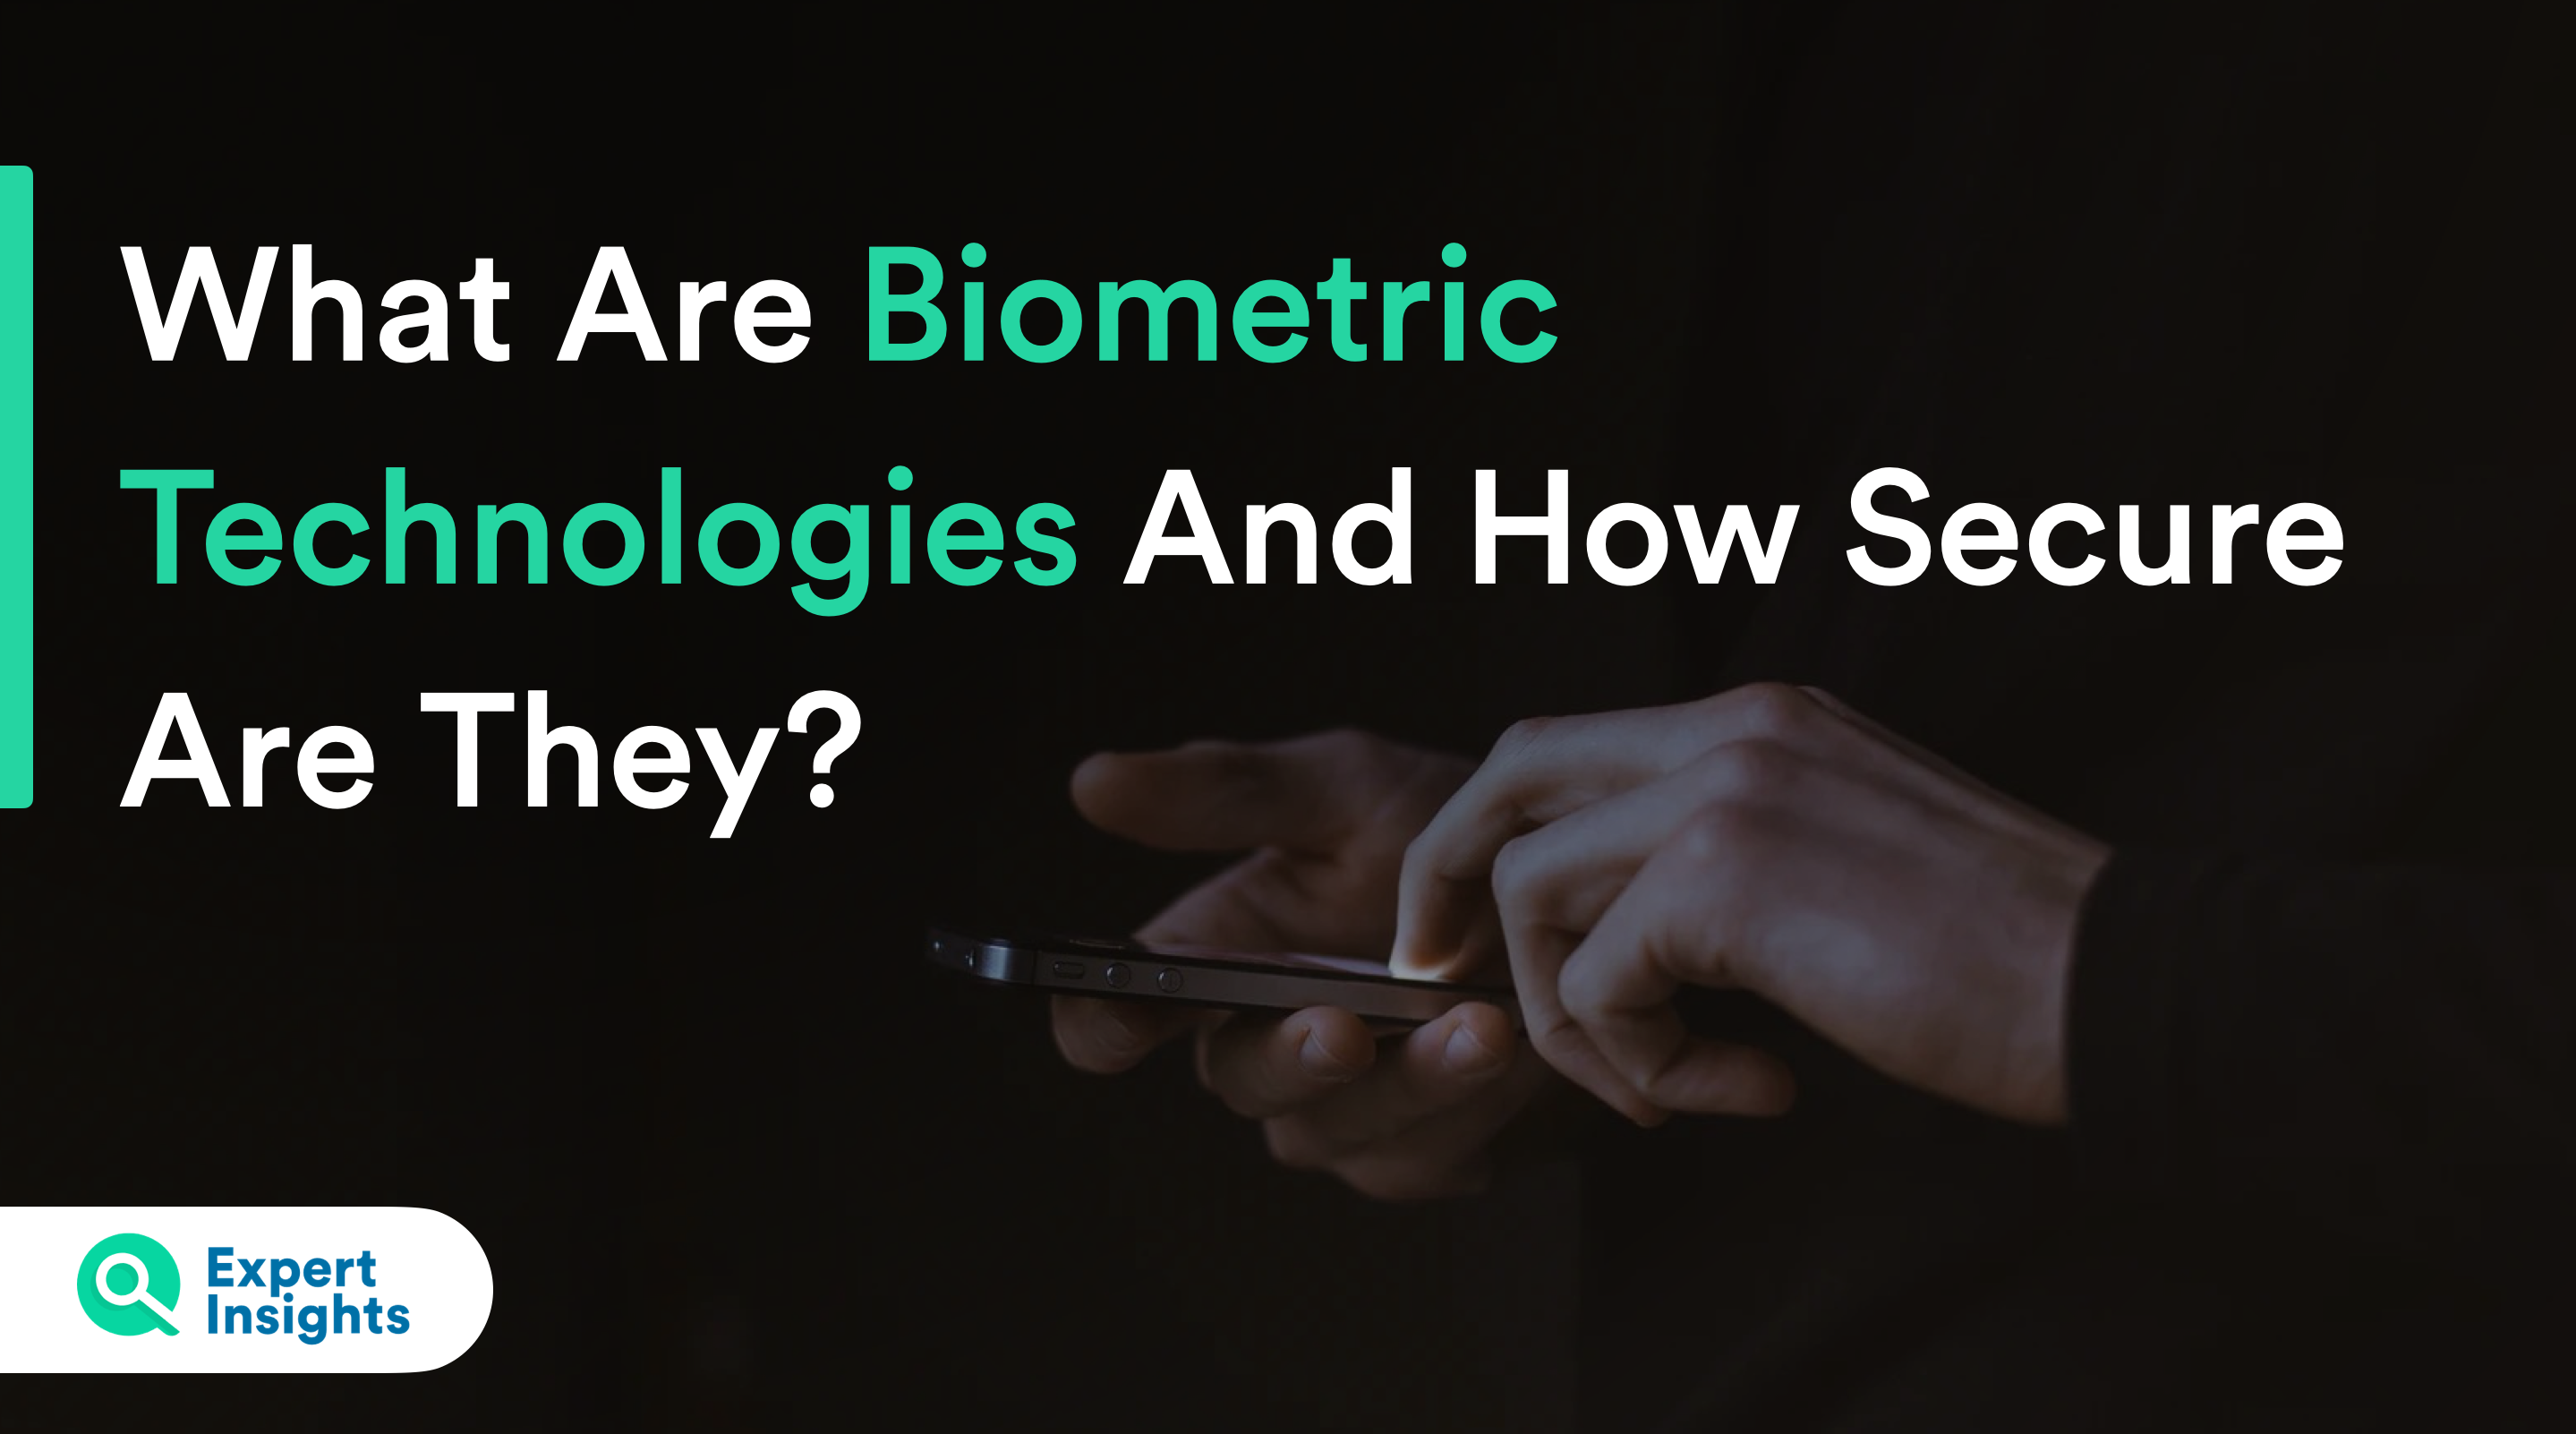 What Are Biometric Technologies And How Secure Are They?